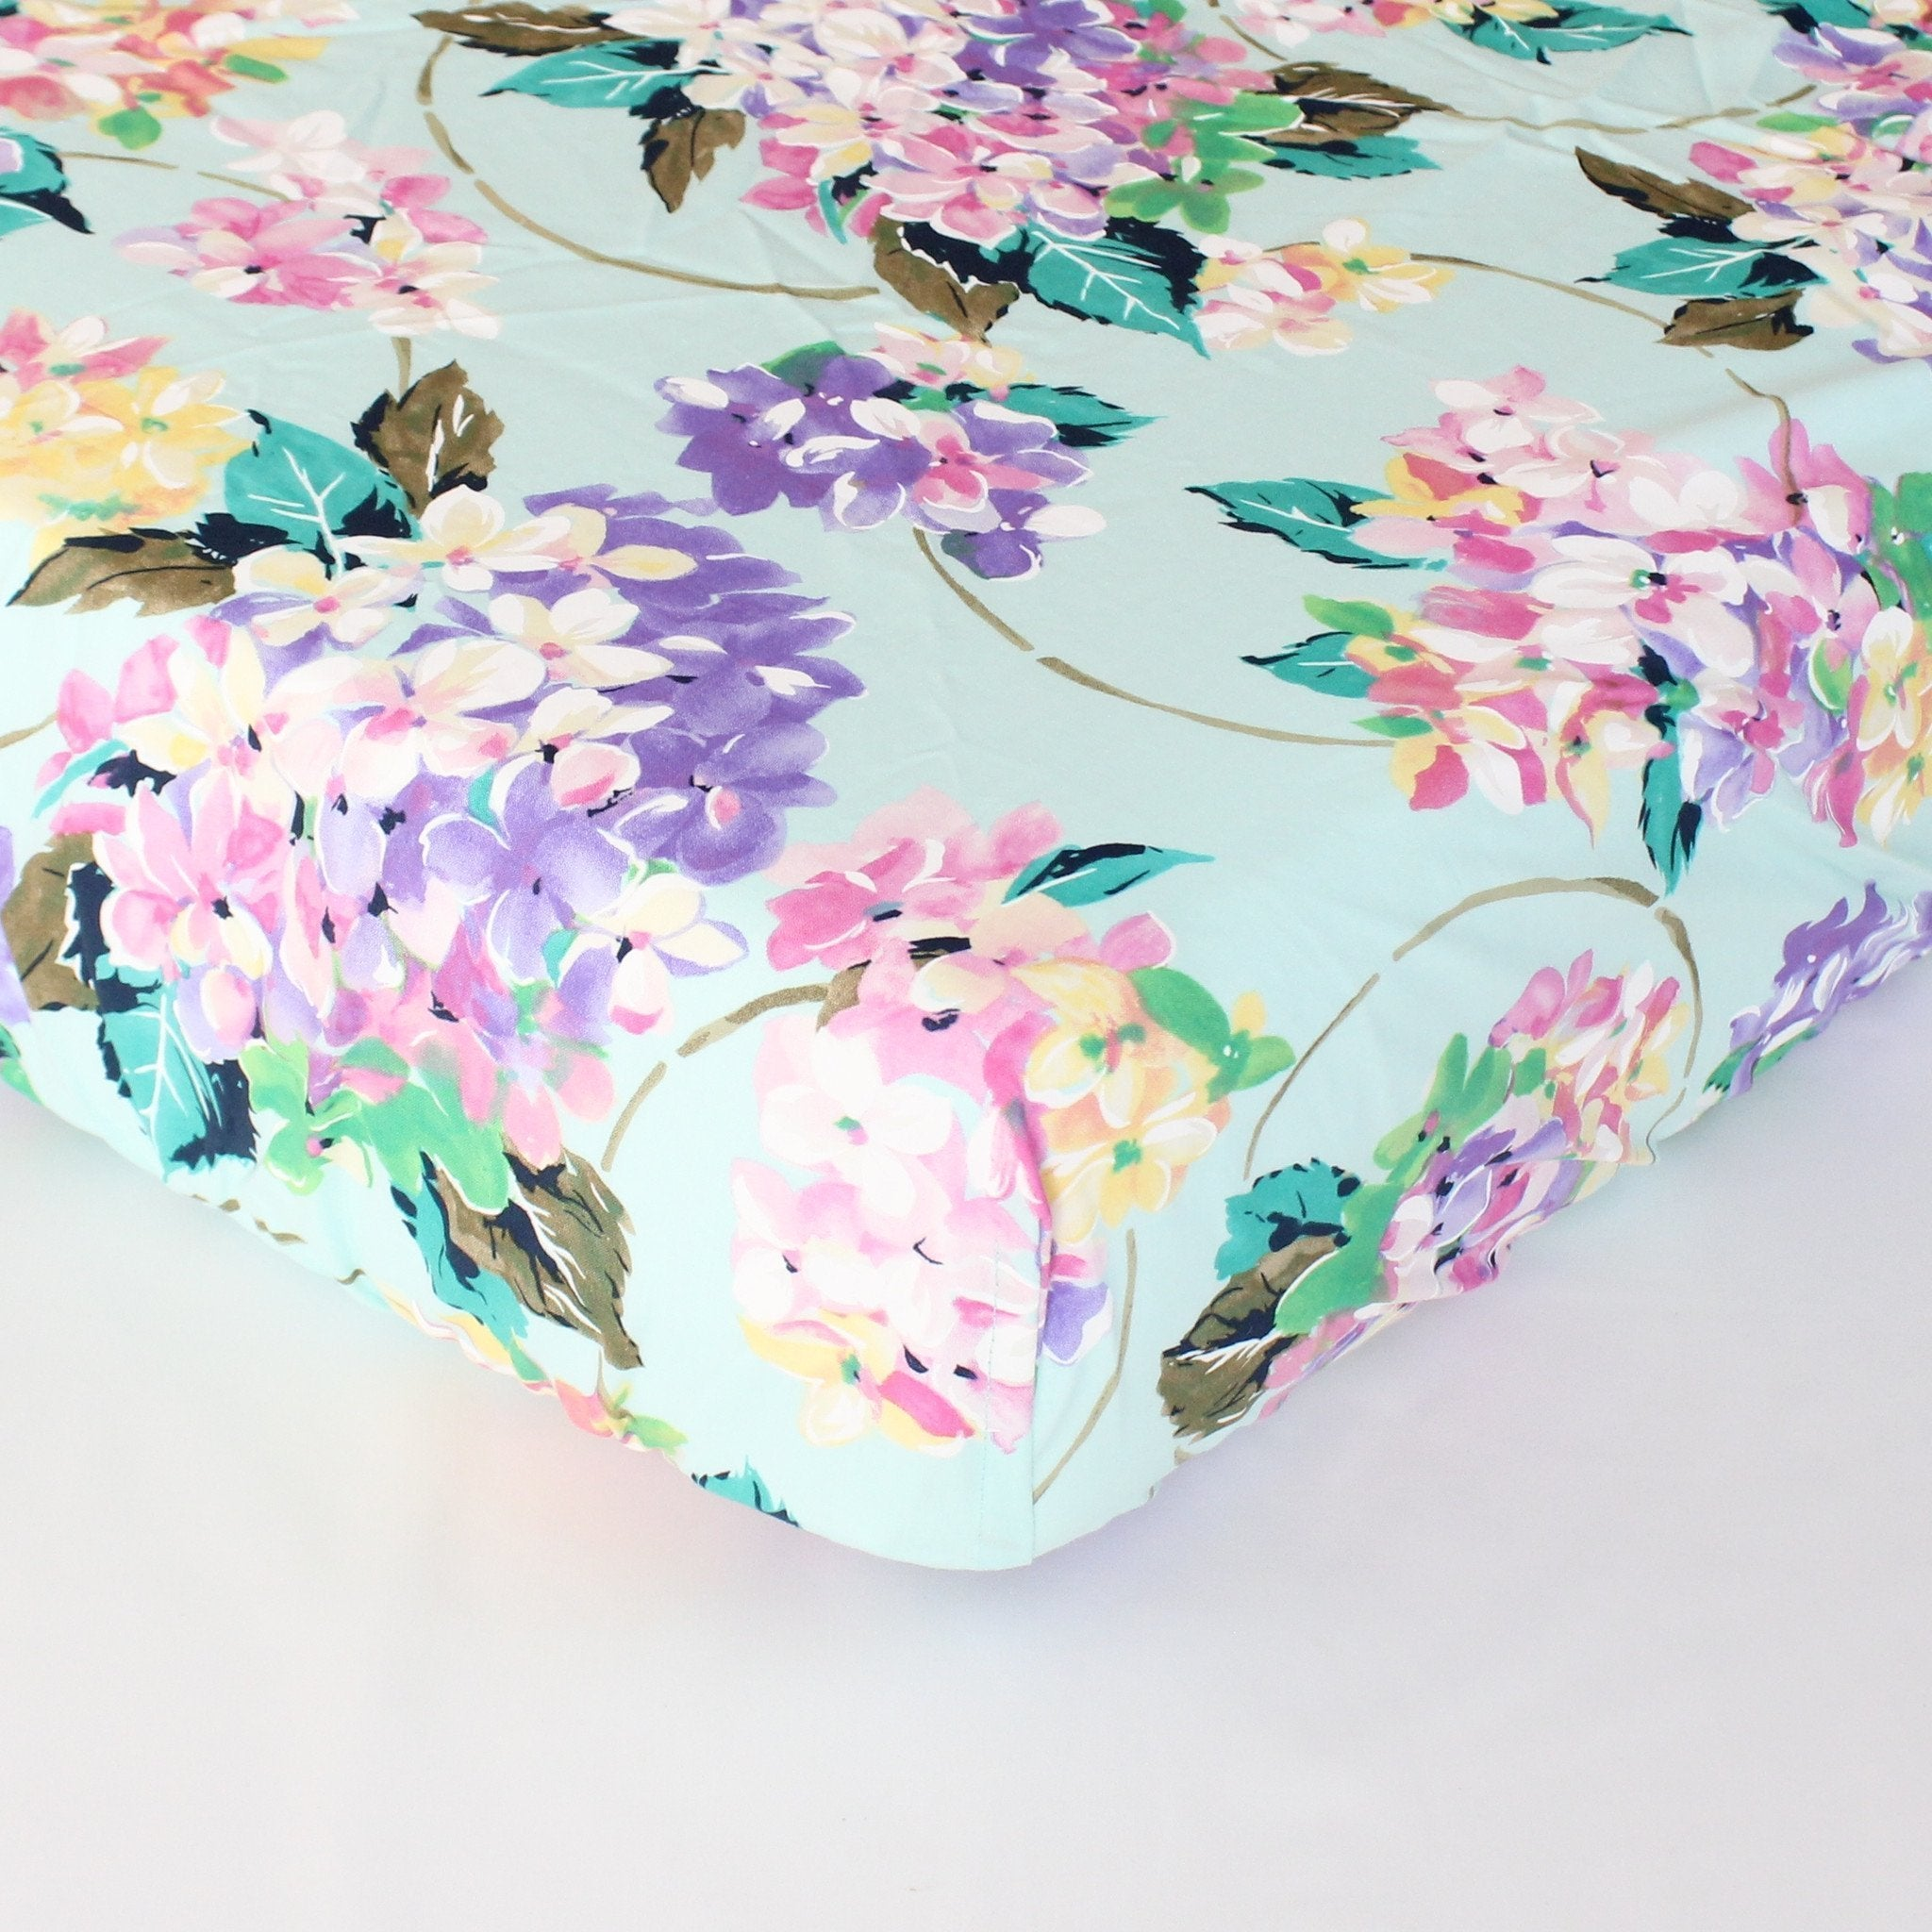 homes beddingblue better chic bedding floral set comforter crib size cribs incredible flower beddingshabby photo full design beddingbby shabby pink gardens incredibleabby blue of and ruching piece